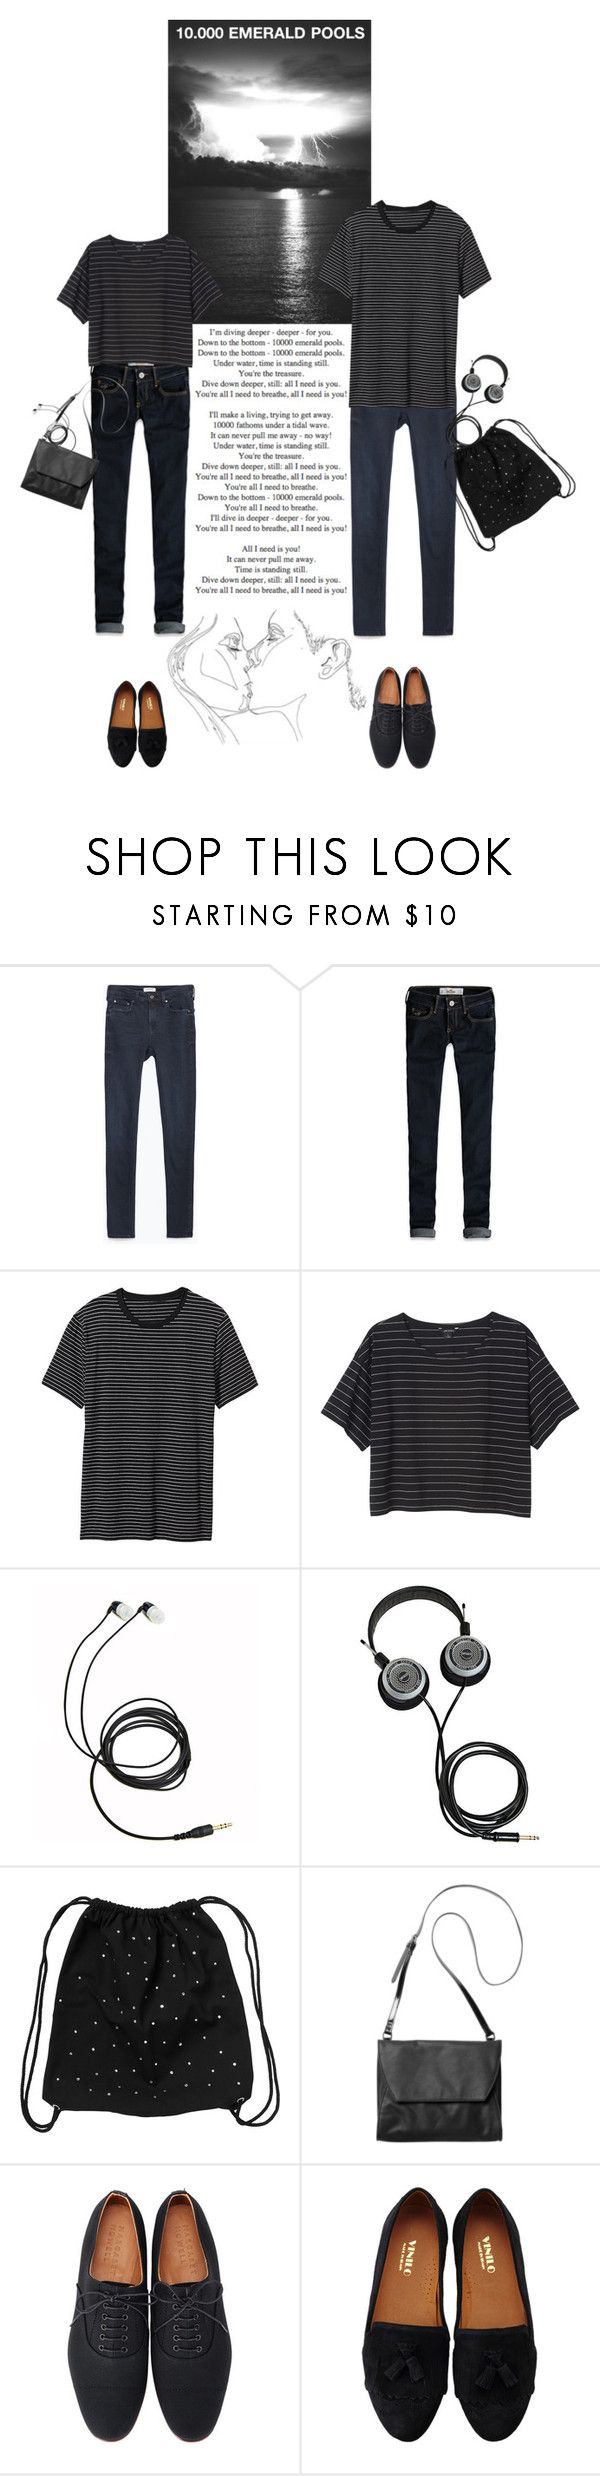 """""""10.000 Emerald Pools - Børns"""" by rosa-loves-skittles ❤ liked on Polyvore featuring Zara, Hollister Co., Old Navy, Monki, Margaret Howell, American Rag Cie, women's clothing, women, female and woman"""